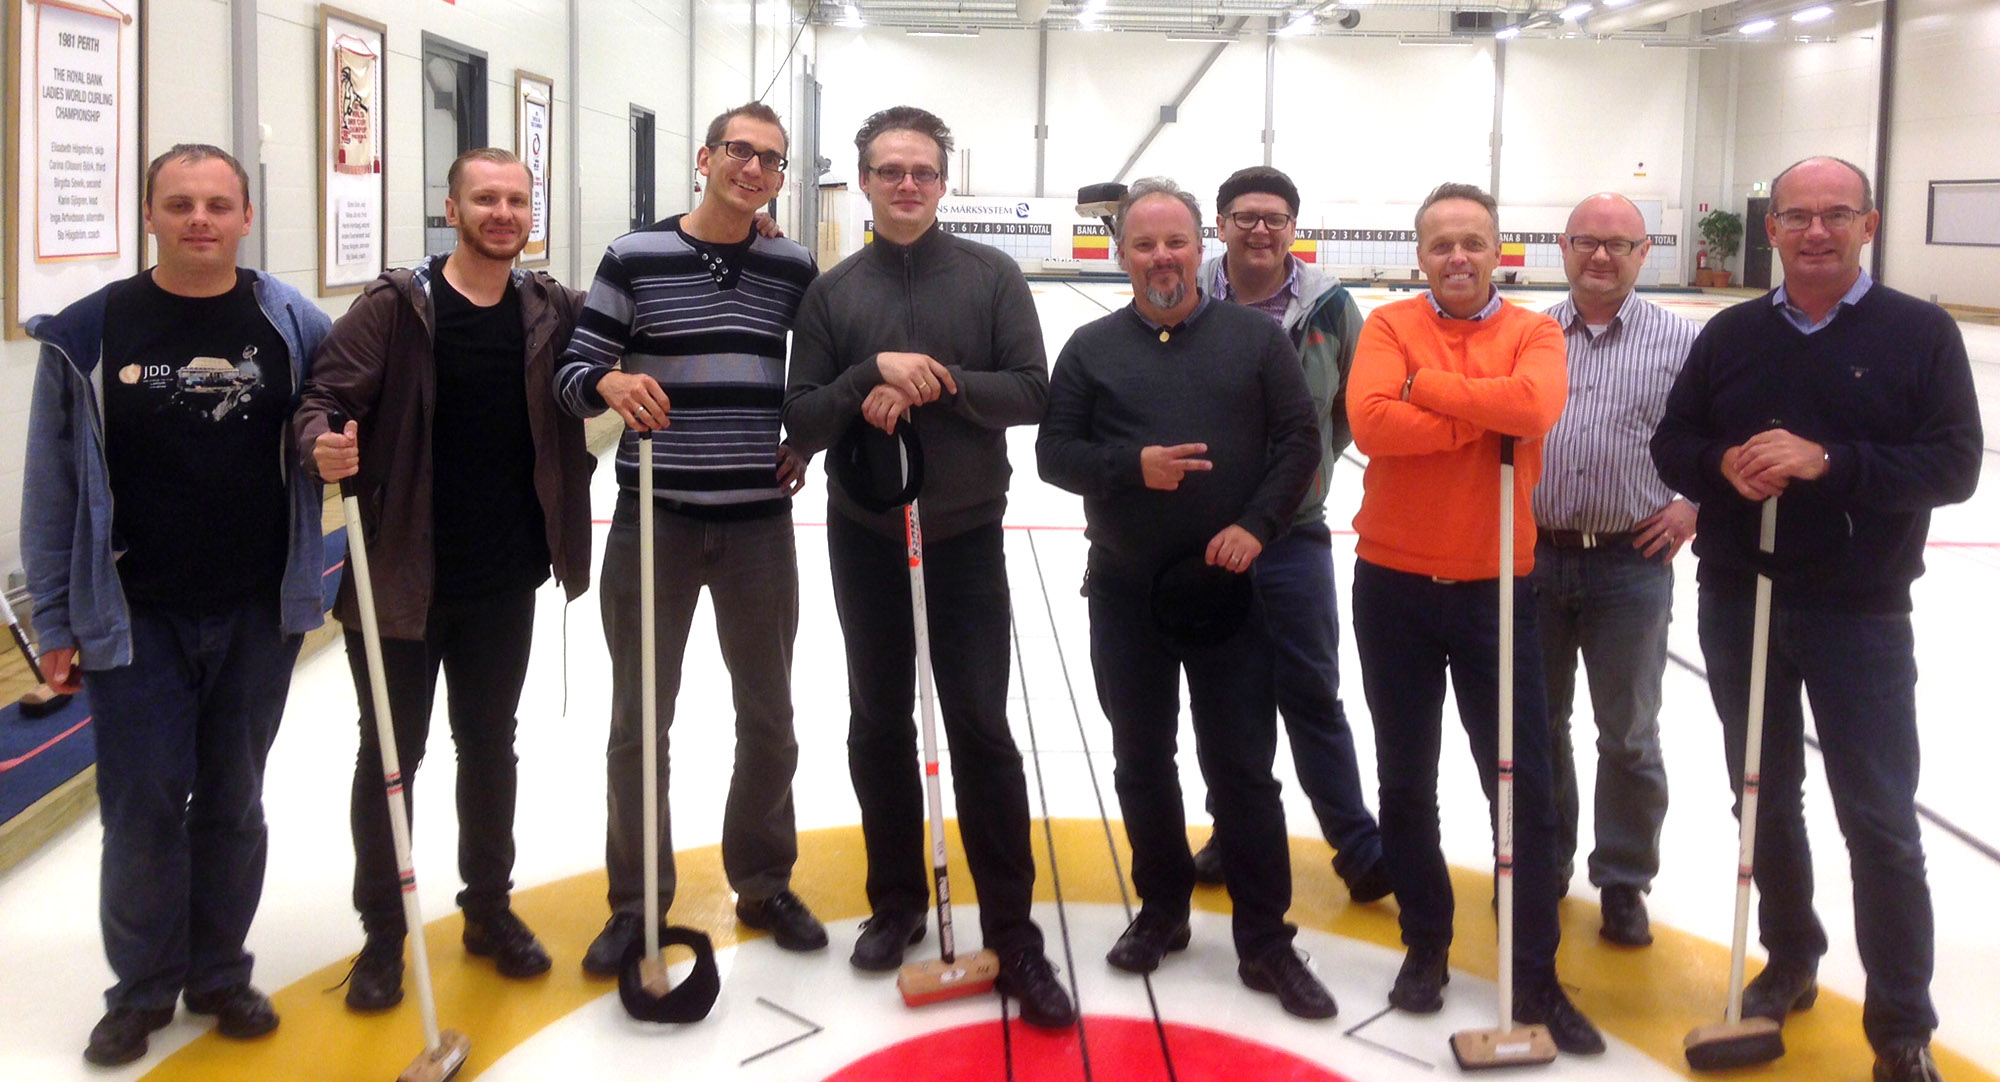 Visiting Karlstad in Sweden the team were invited to play curling with Swedish colleagues